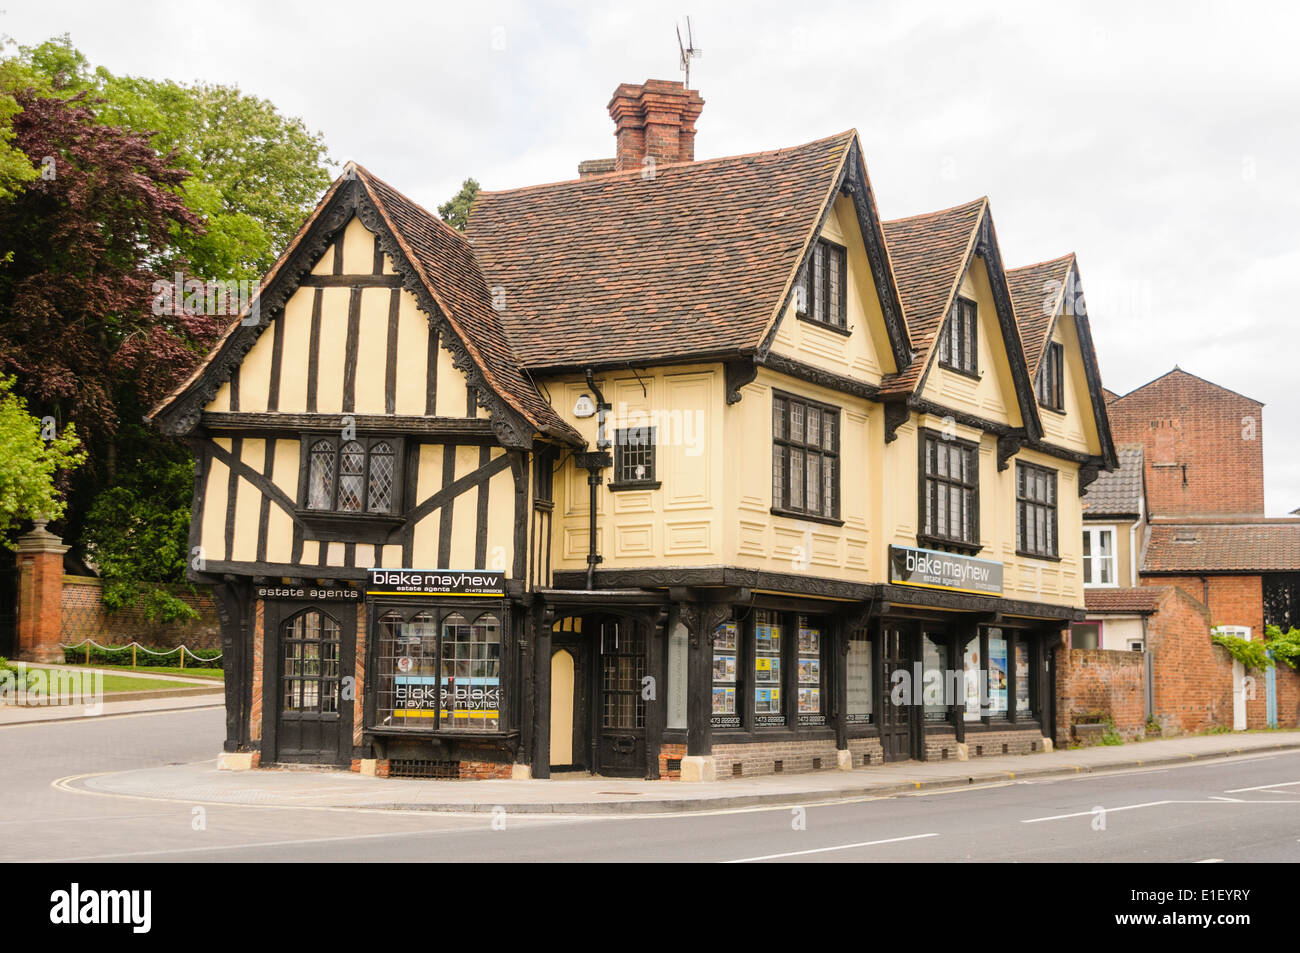 Blake Mayhew estate agents, housed in an old Tudor building, Ipswich - Stock Image